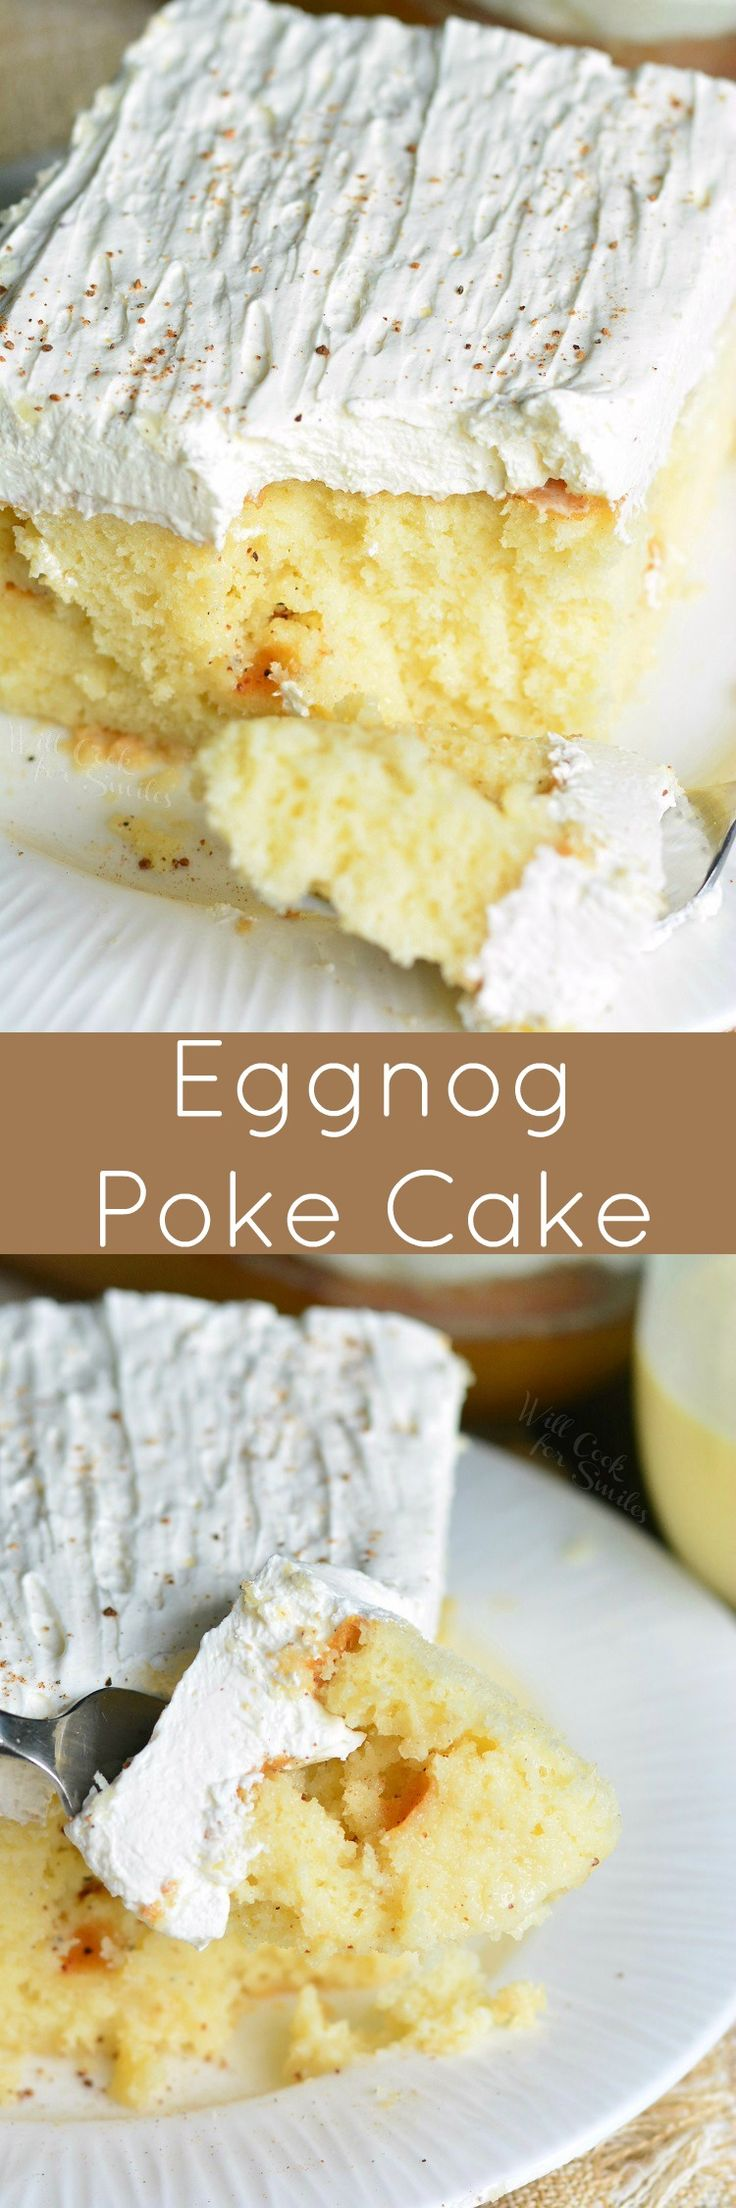 Eggnog Poke Cake! This cake is spiced with nutmeg, soaked in a sweet eggnog sauce and then, topped with creamy eggnog topping. PERFECT easy cake for the season. #pokecake #eggnog